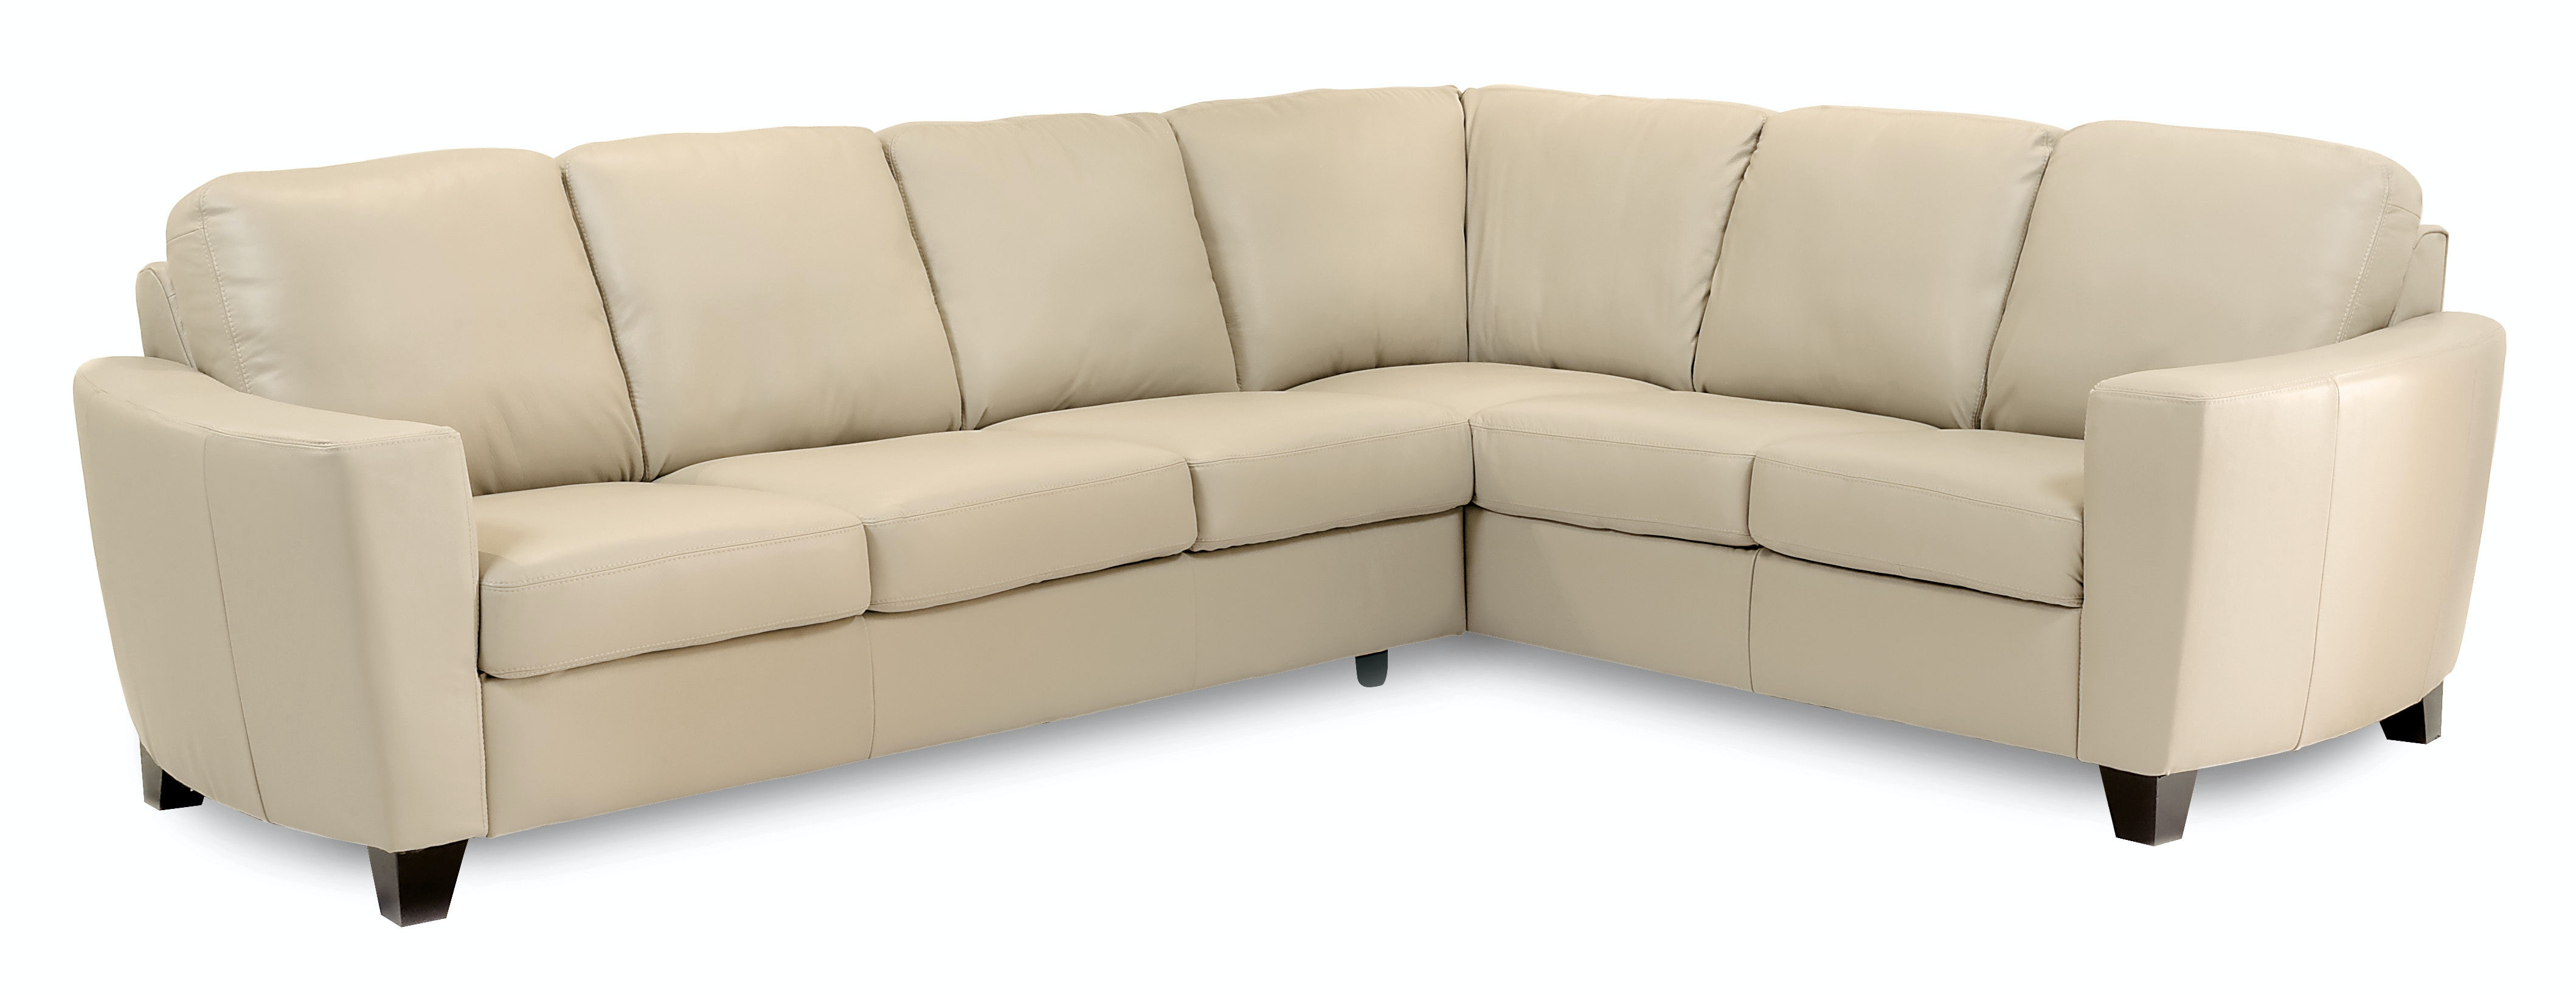 77328 Sectional